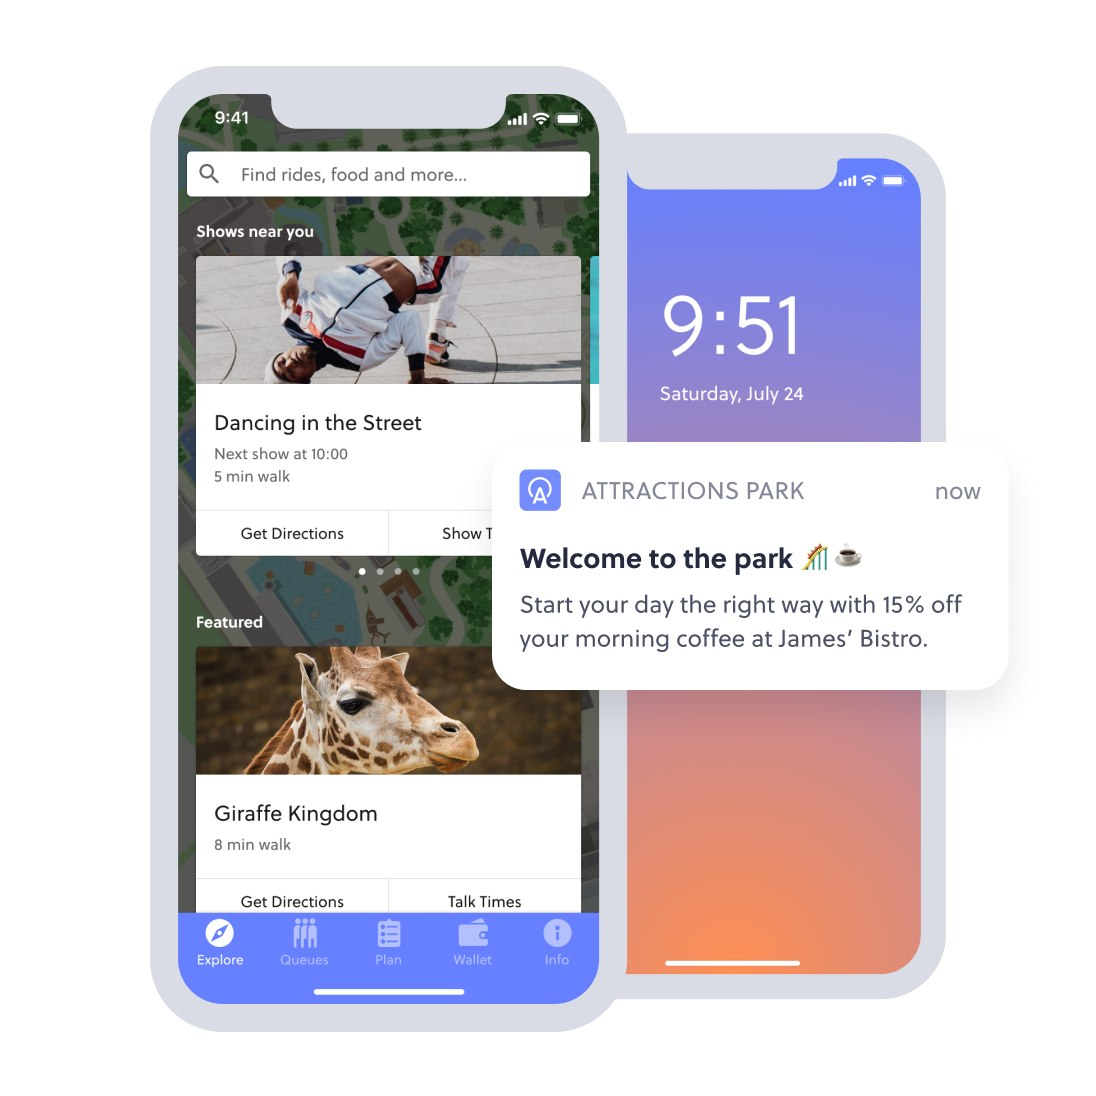 in app messaging and notifications